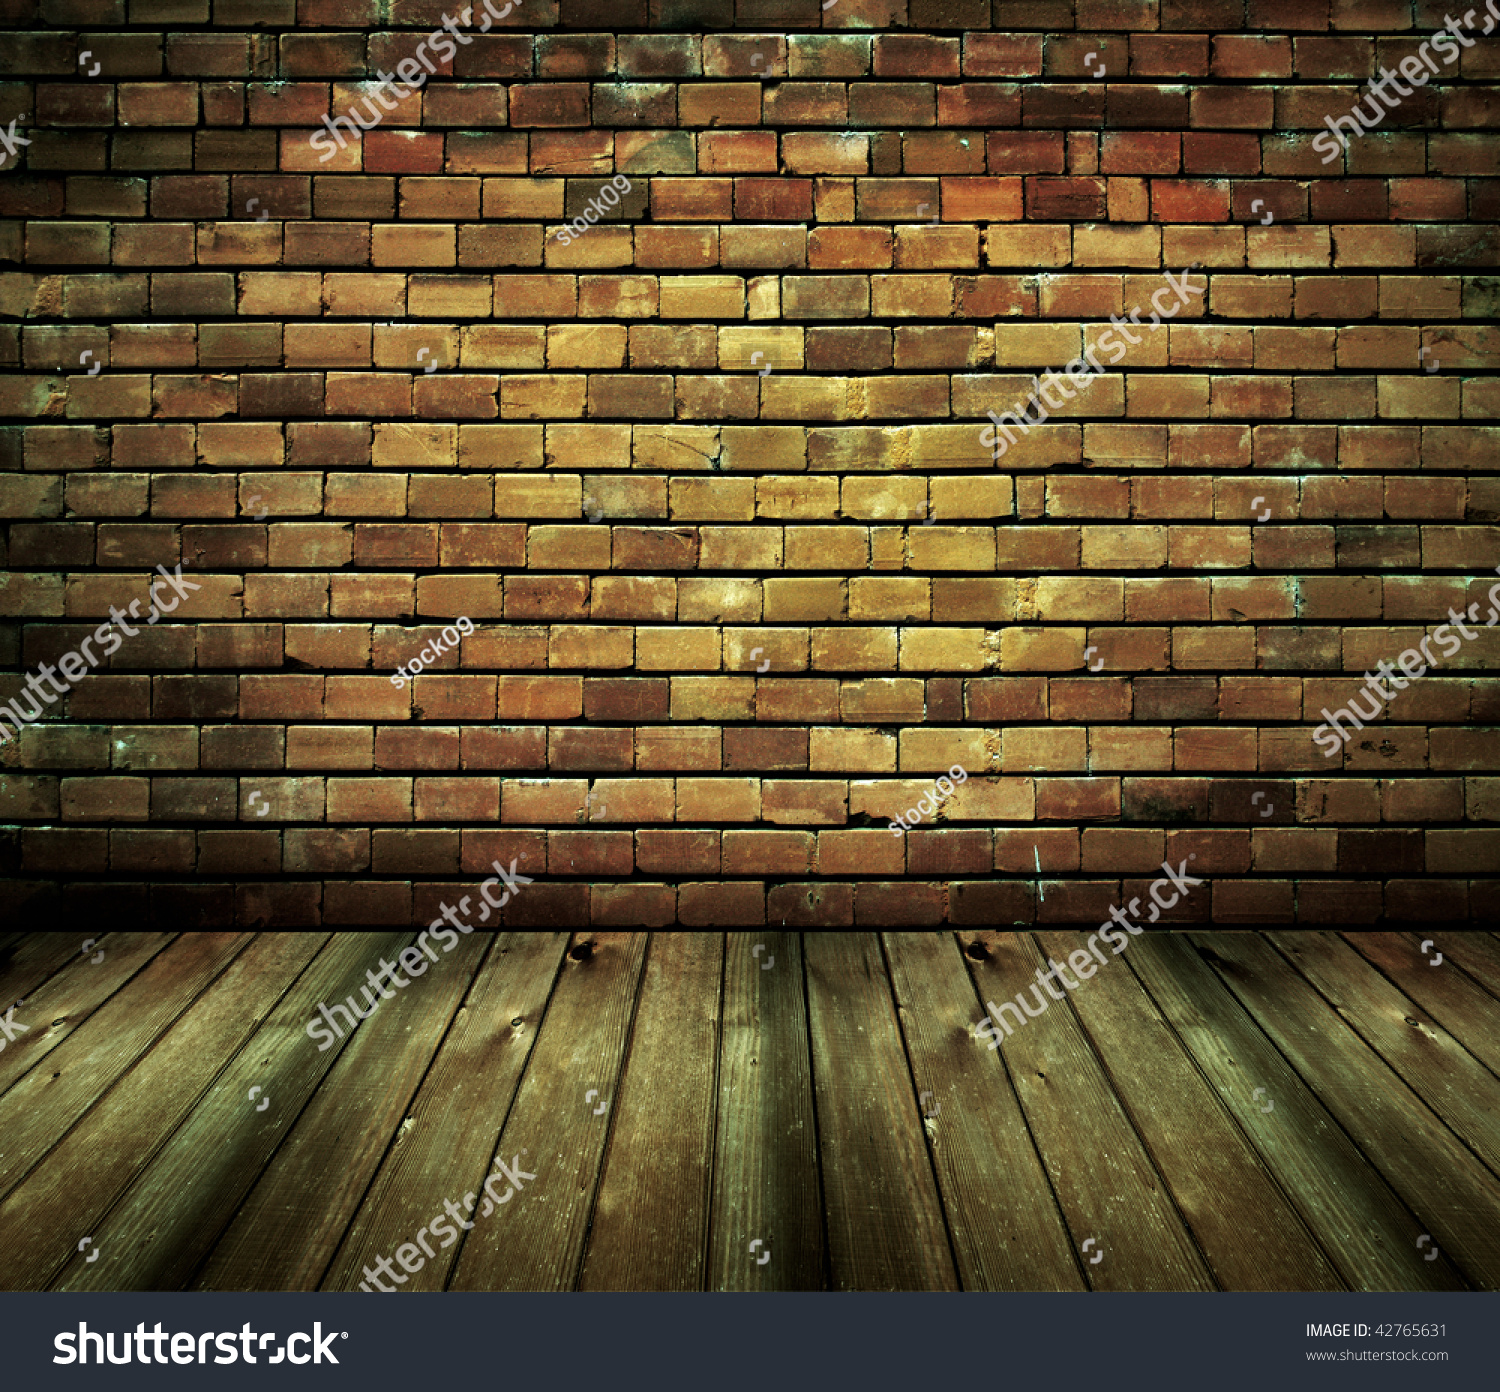 Vintage Brick Wall And Wood Floor Texture Interior Stock Photo ...